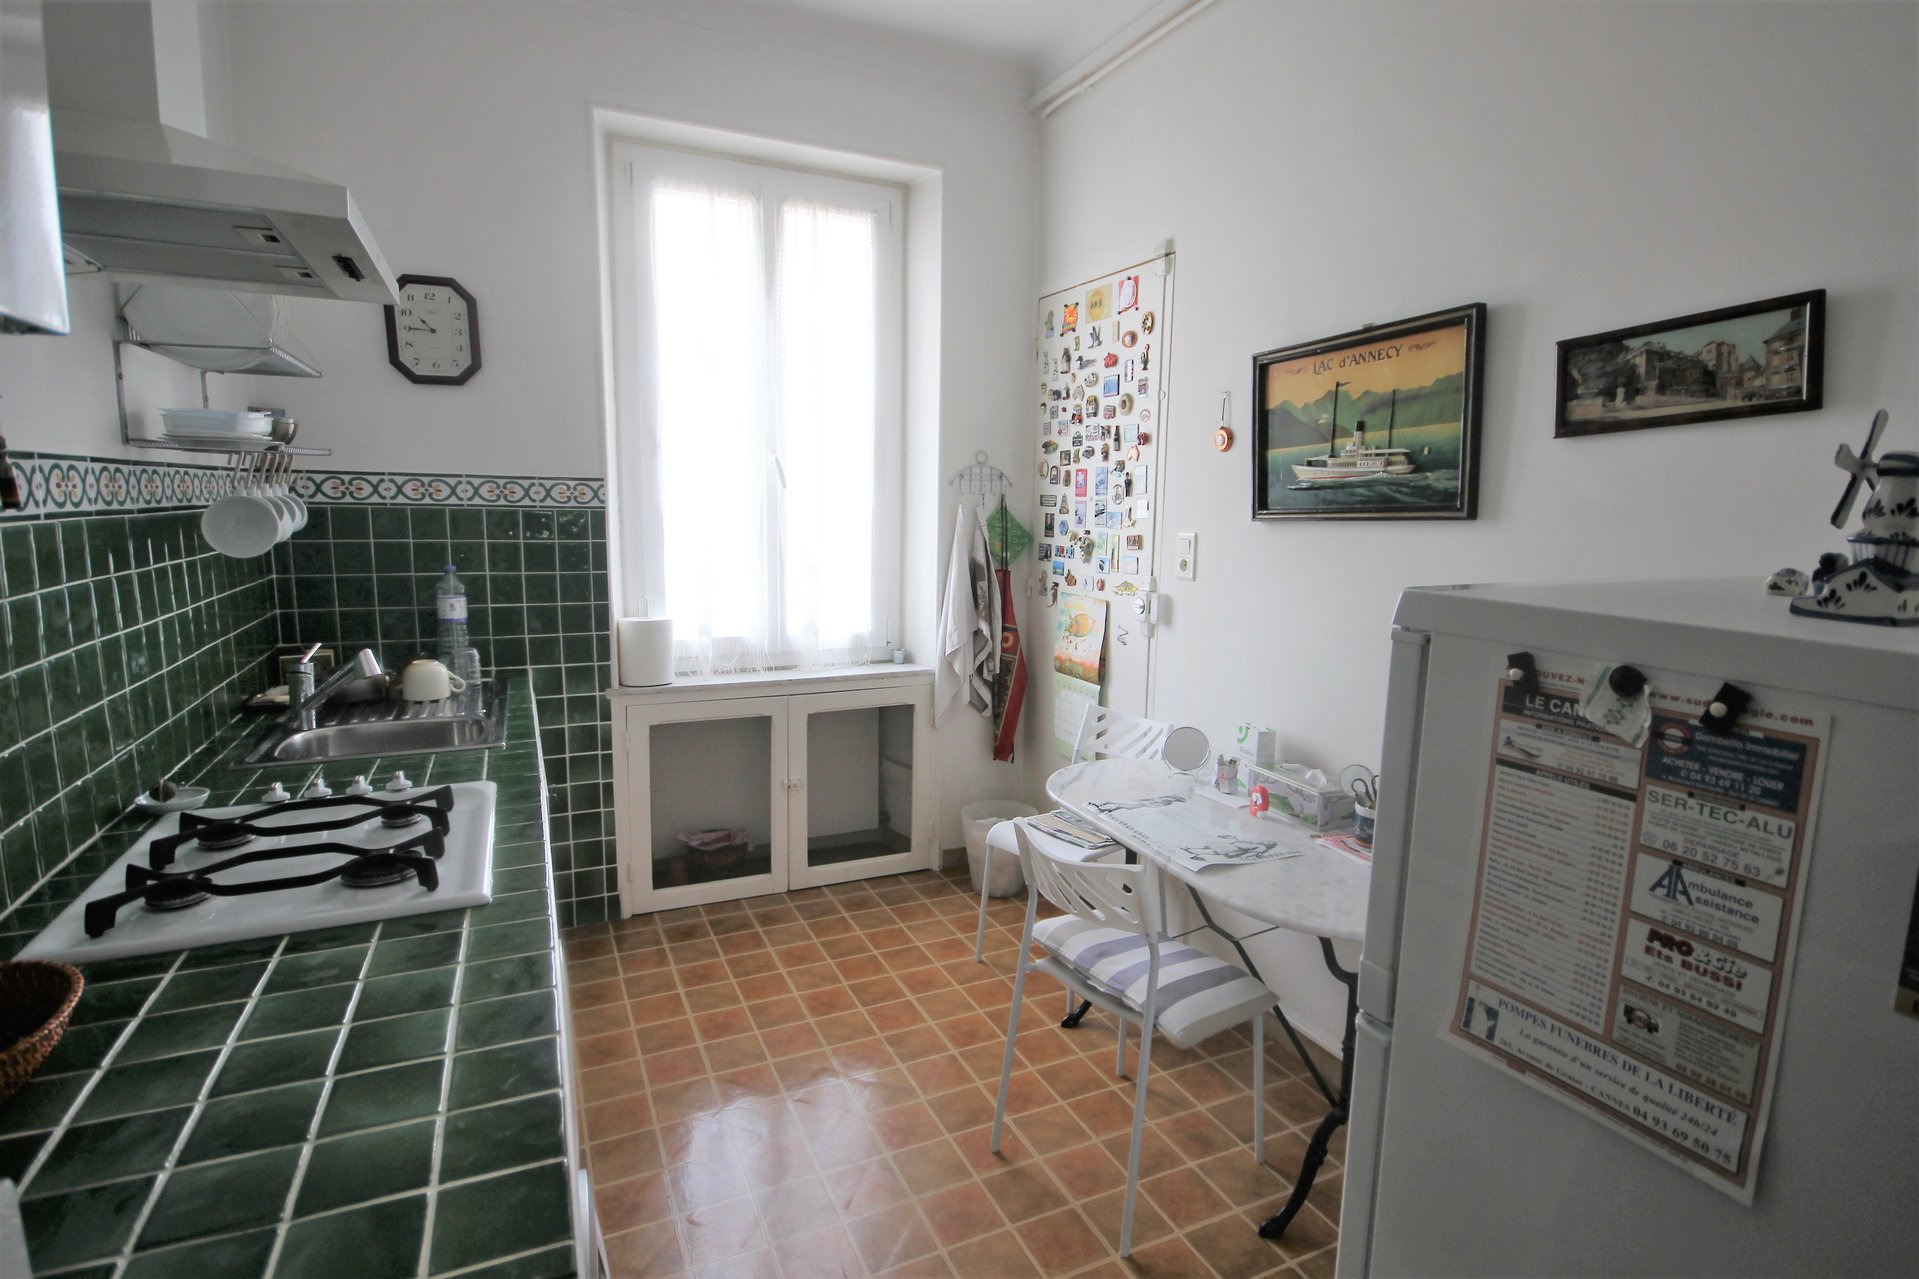 SALE 3 ROOMS BOURGEOIS